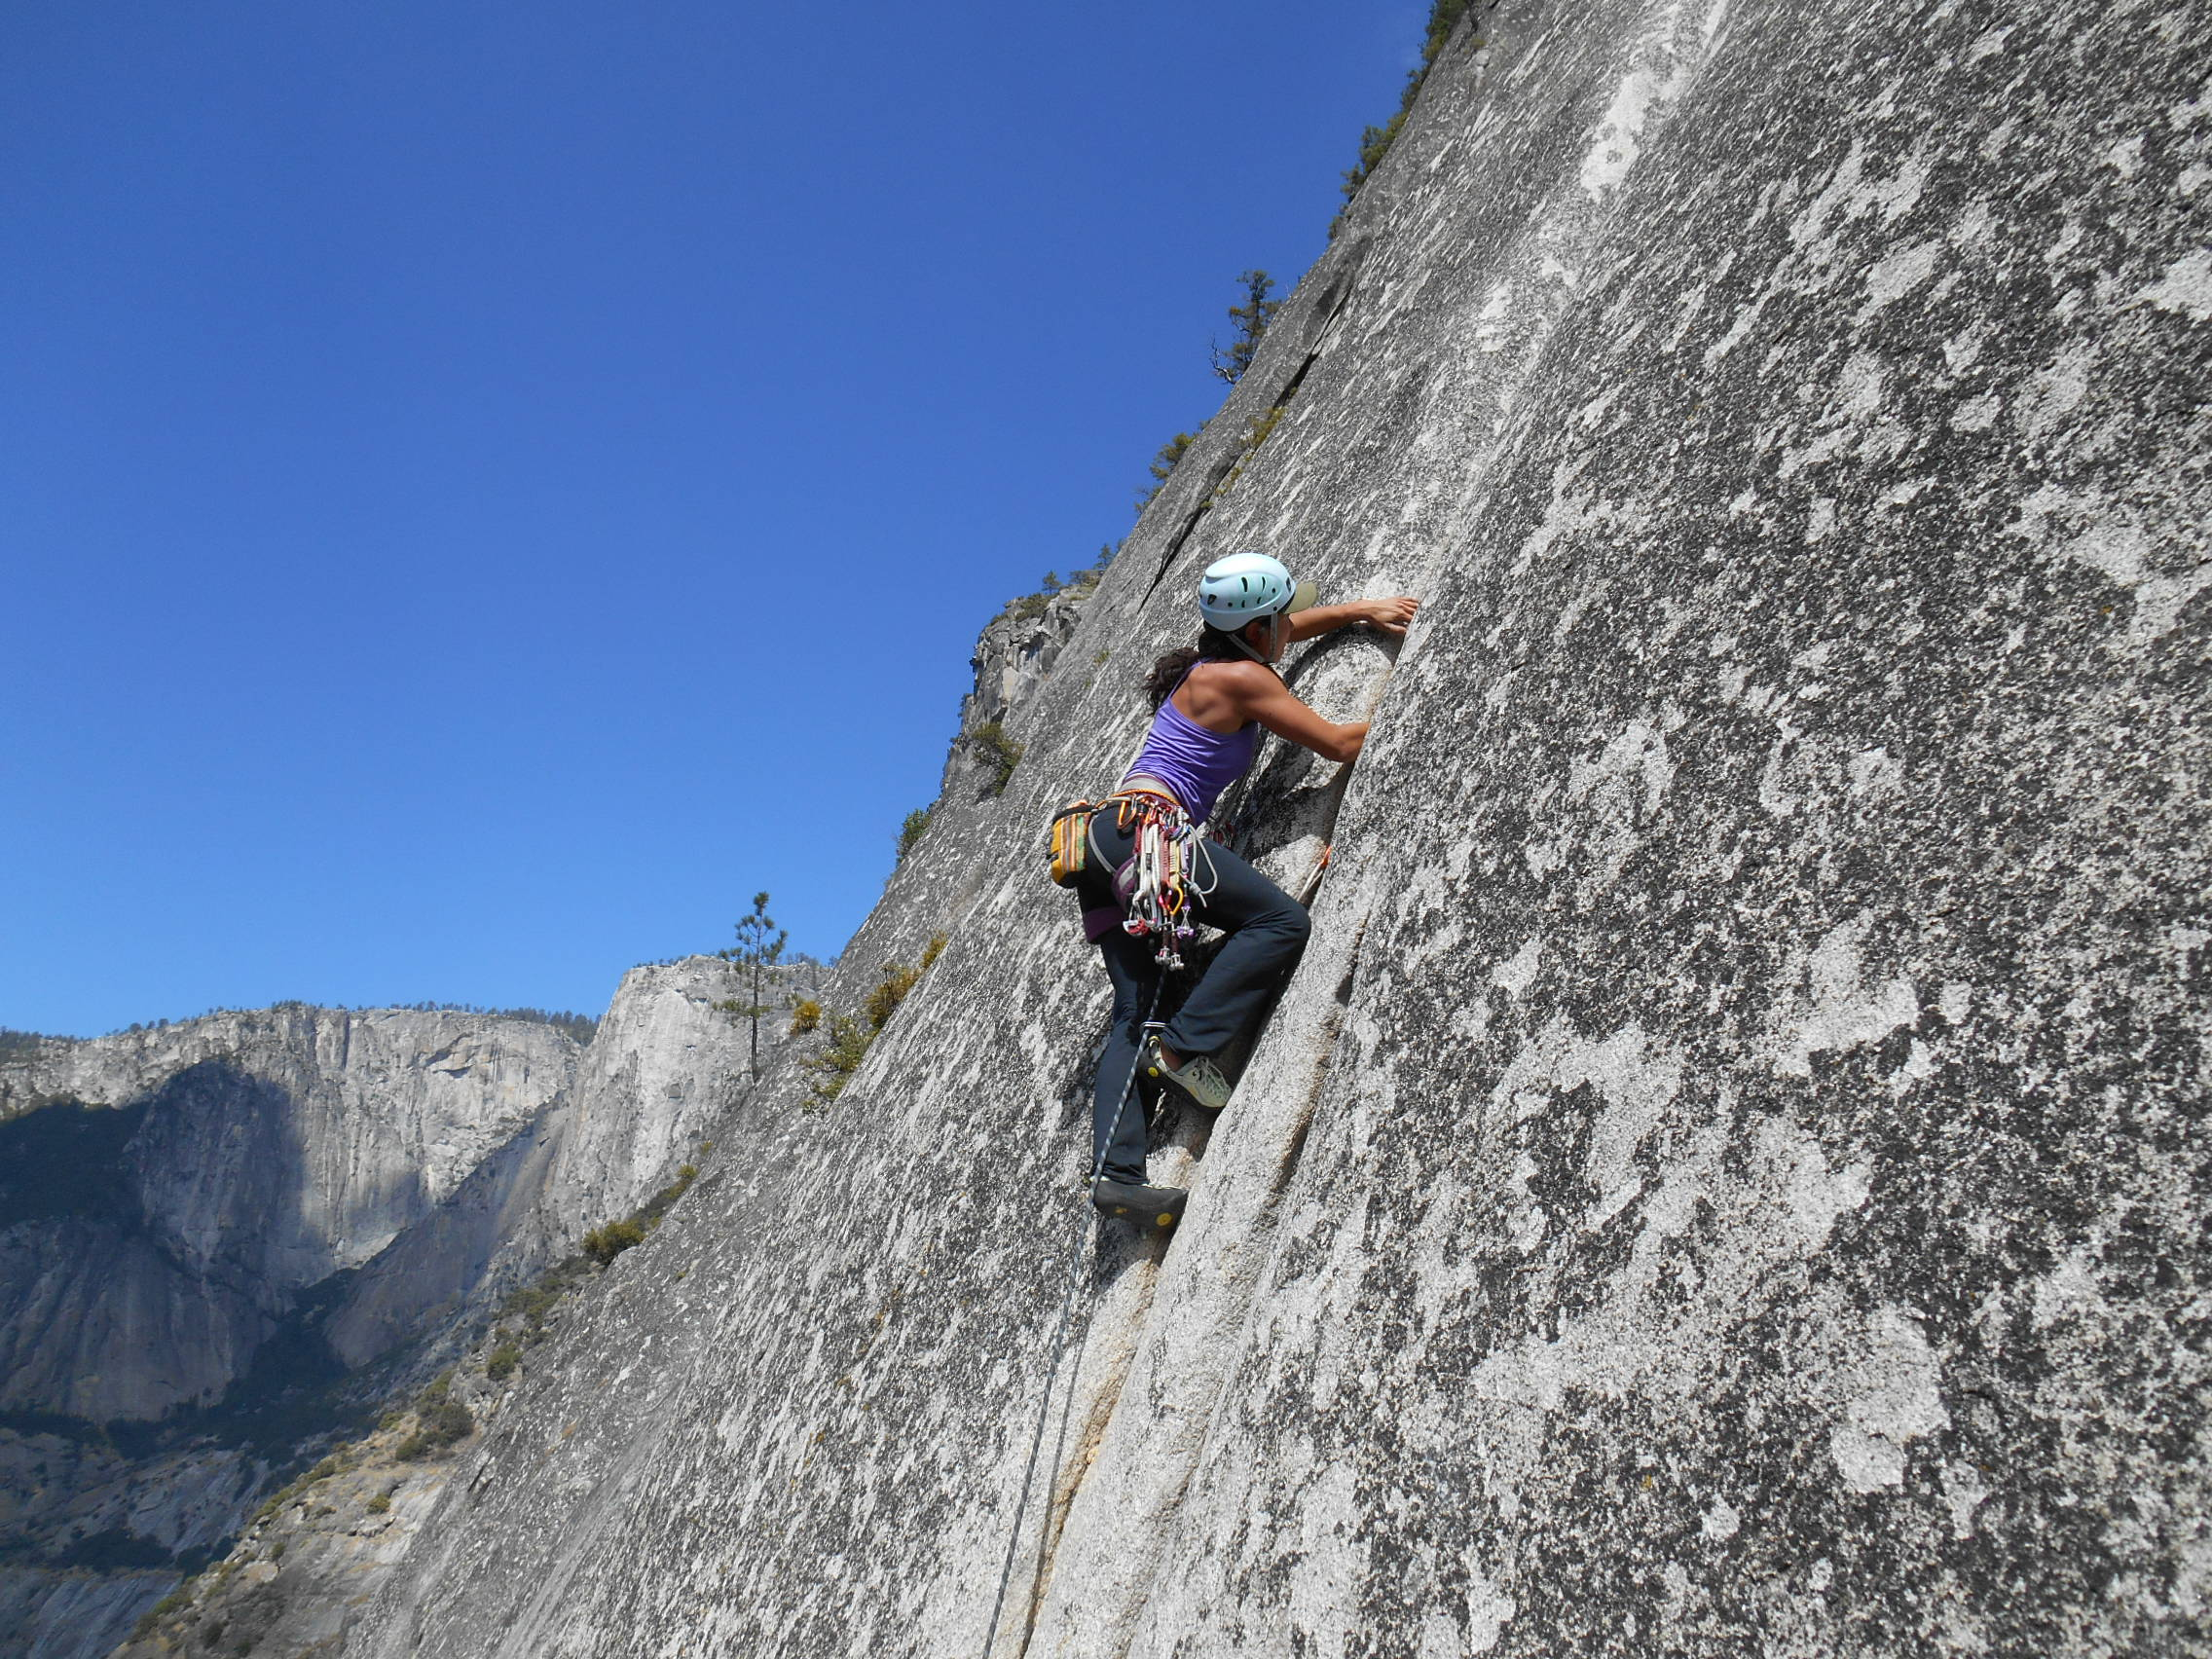 eu escalando no yosemite - via royal arc